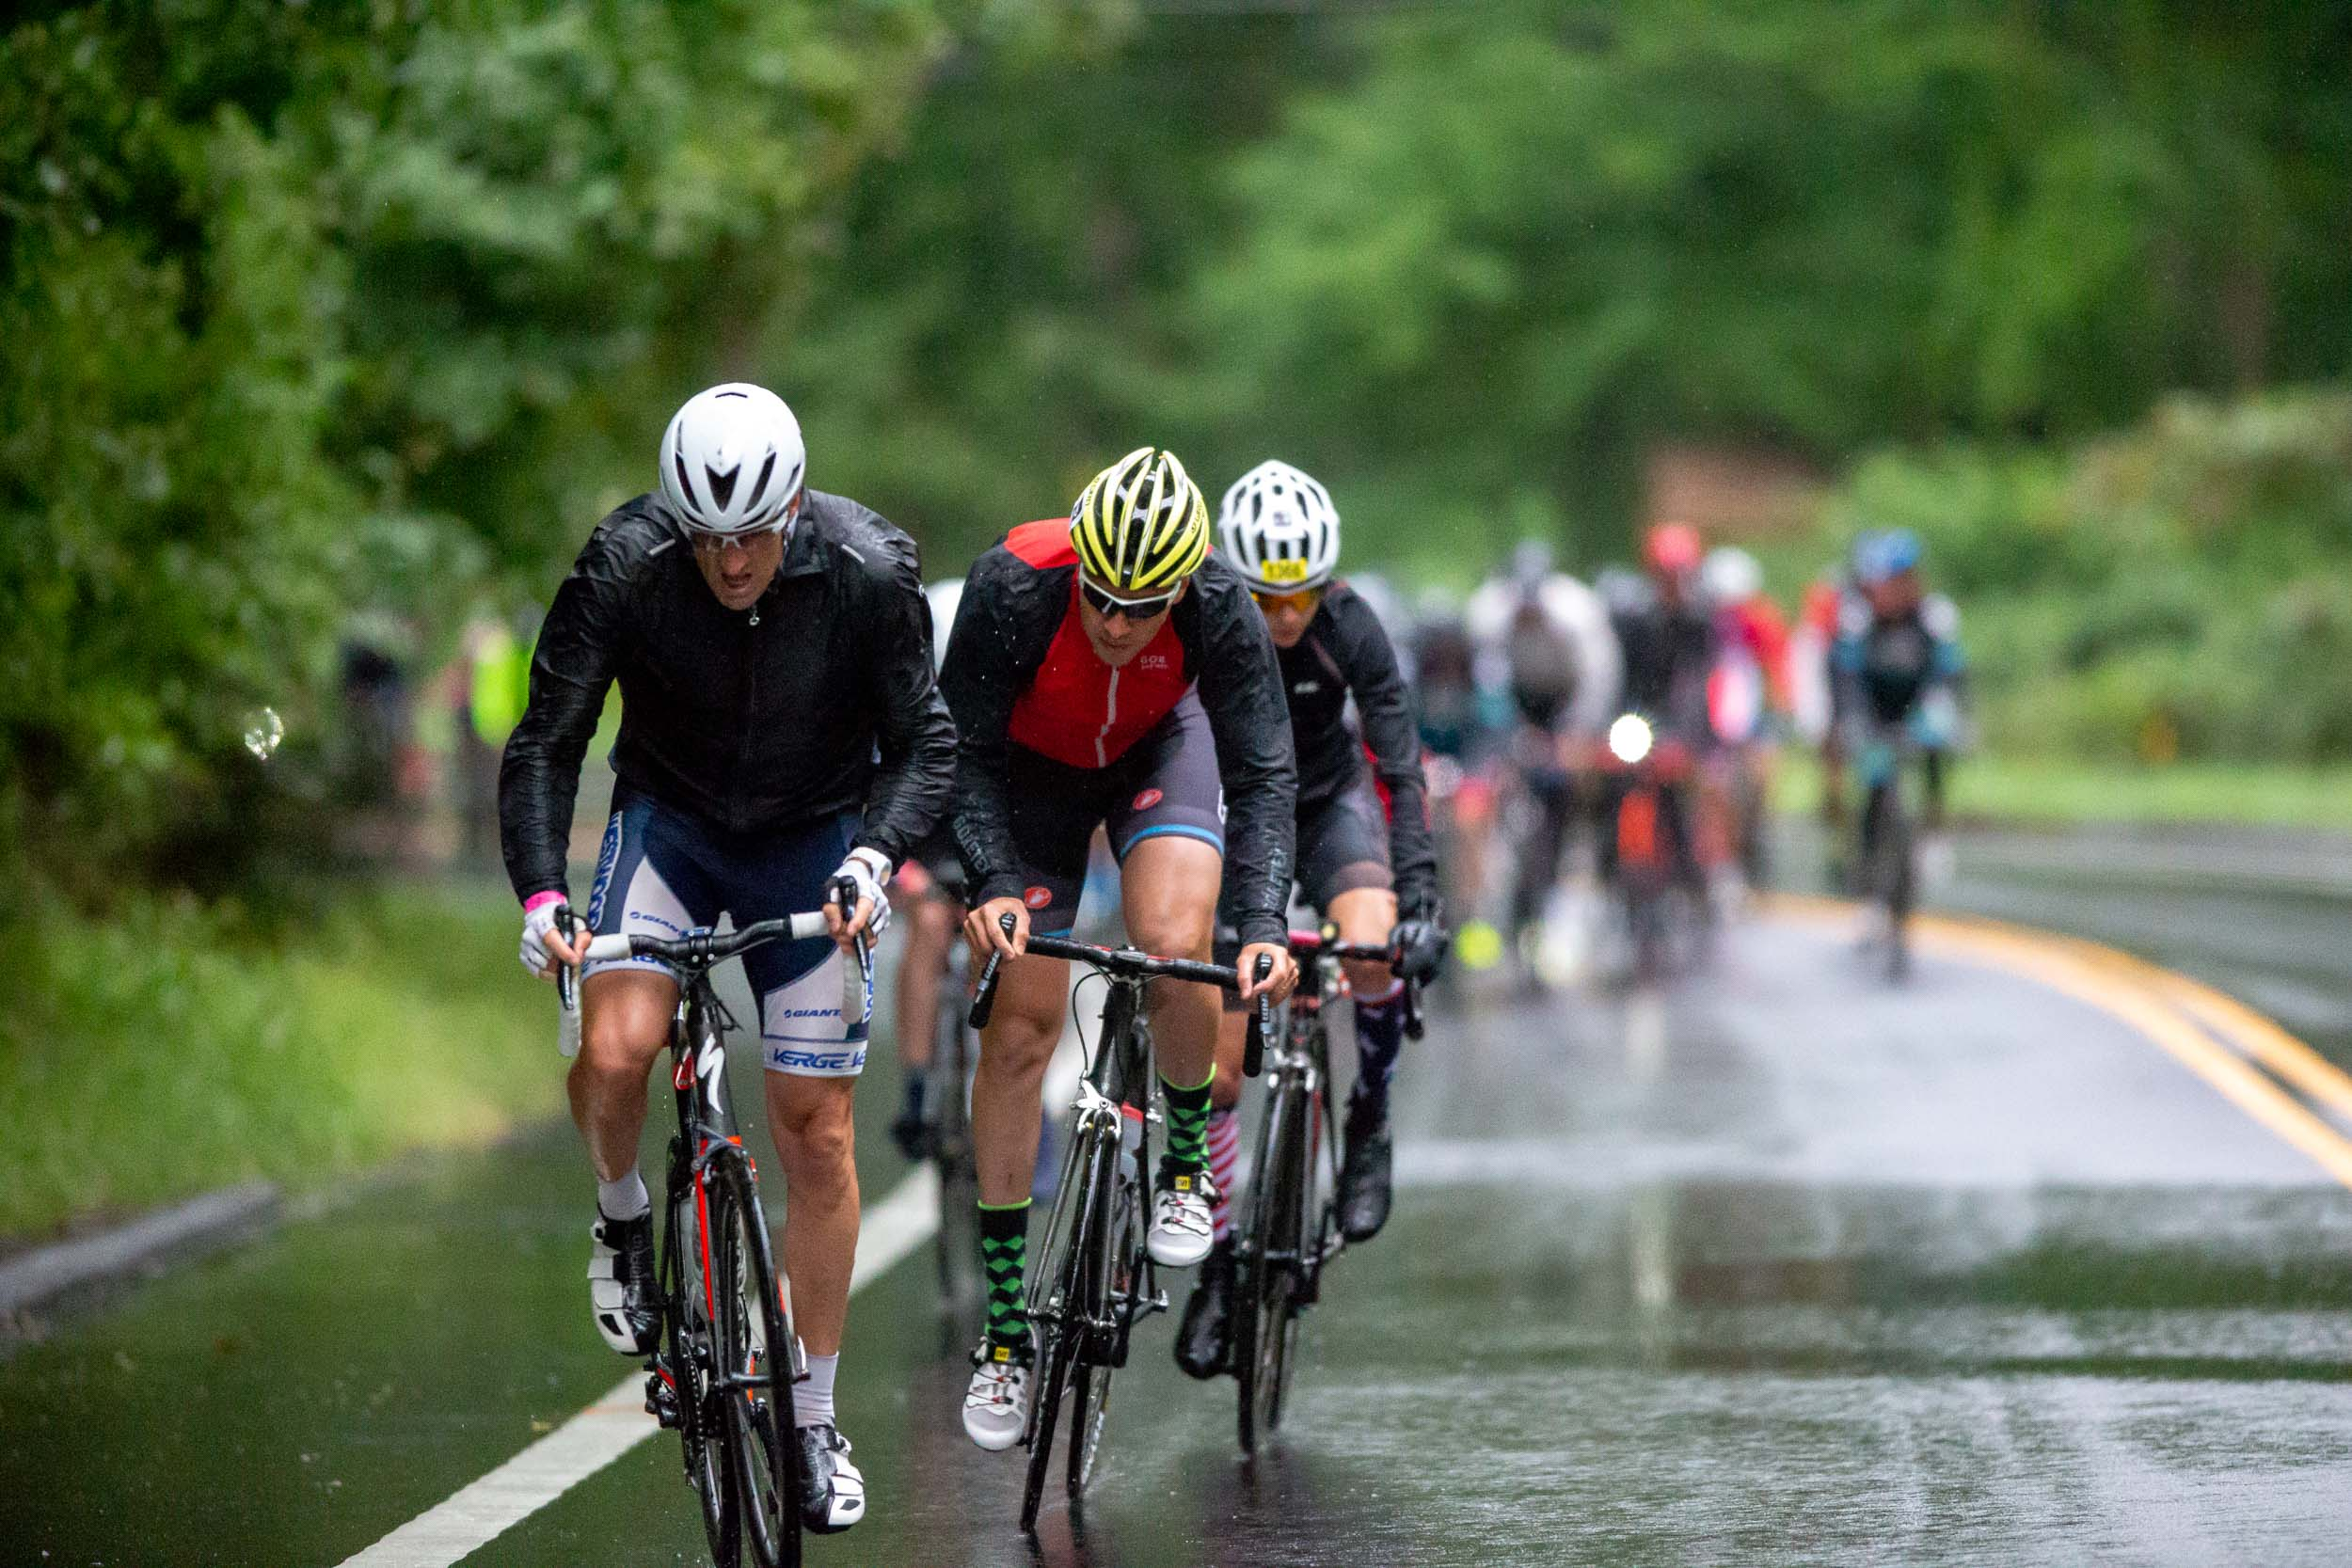 The rainy, cold and glorious 2018 edition brought the best out of riders working together.